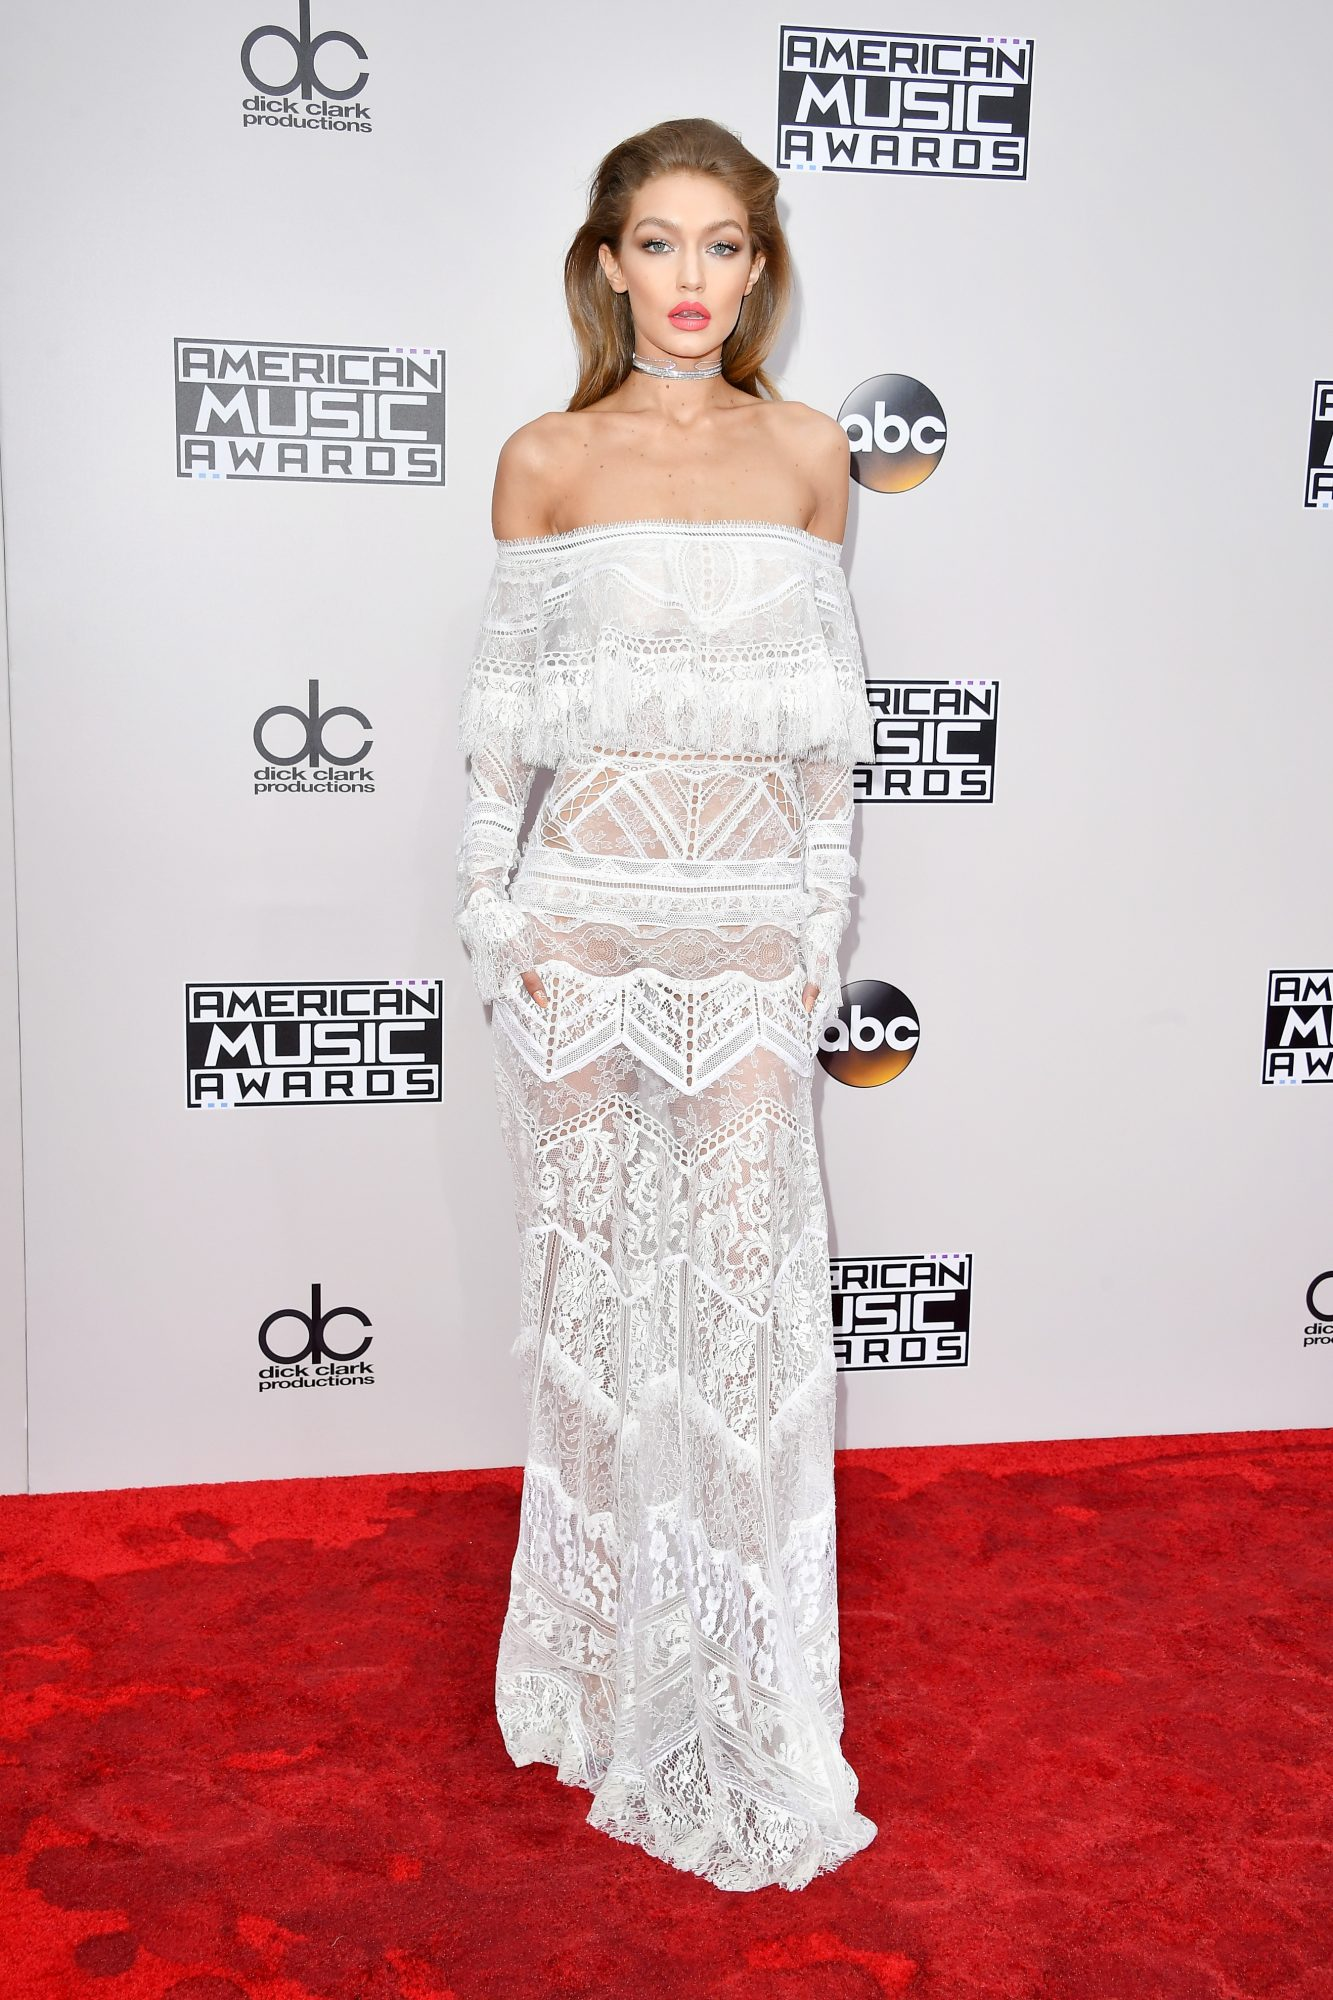 Gigi Hadid wearing a white Roberto Cavalli dress on the 2016 AMA red carpet